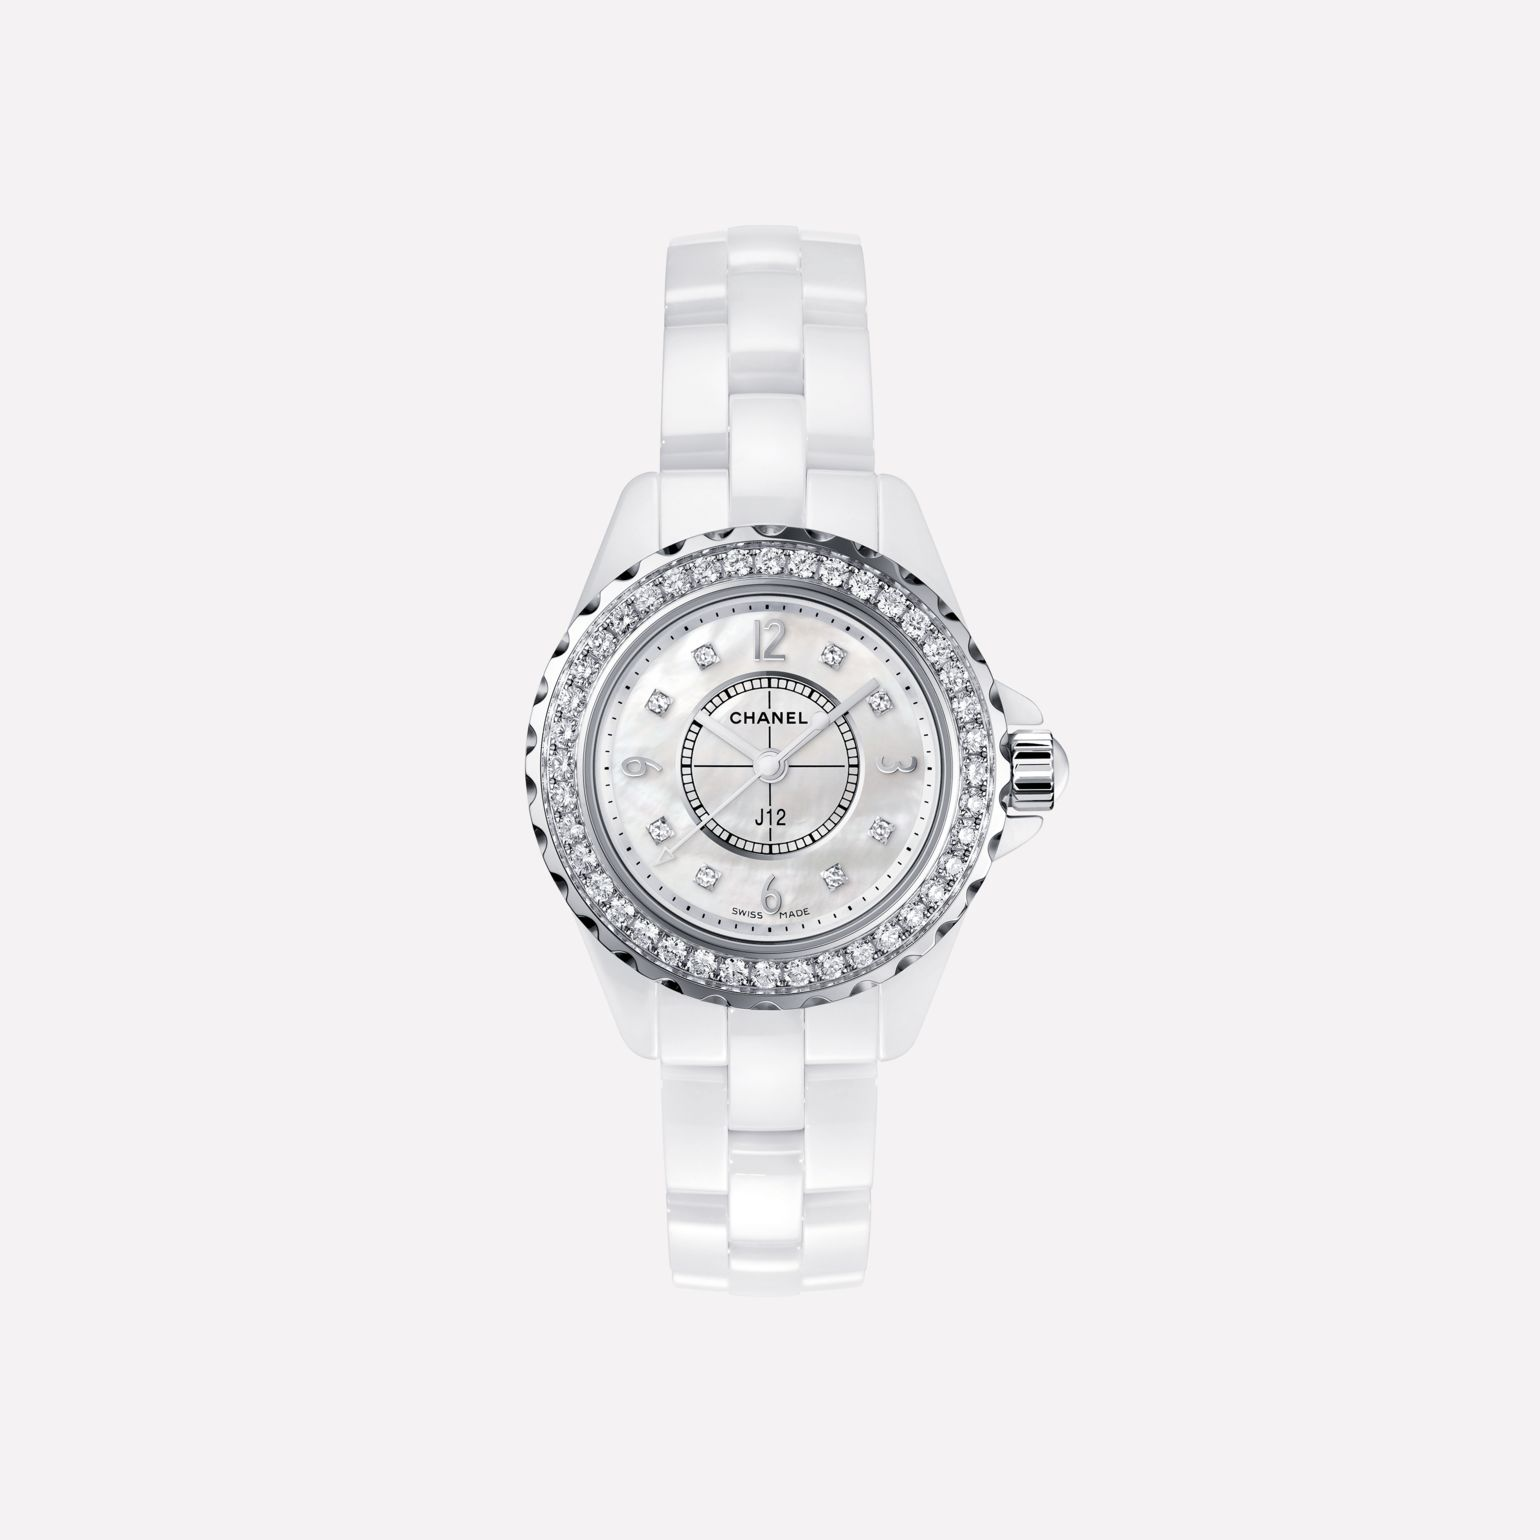 J12 Watch White highly-resistant ceramic and steel, brilliant-cut diamond bezel and indicators, white mother-of-pearl dial